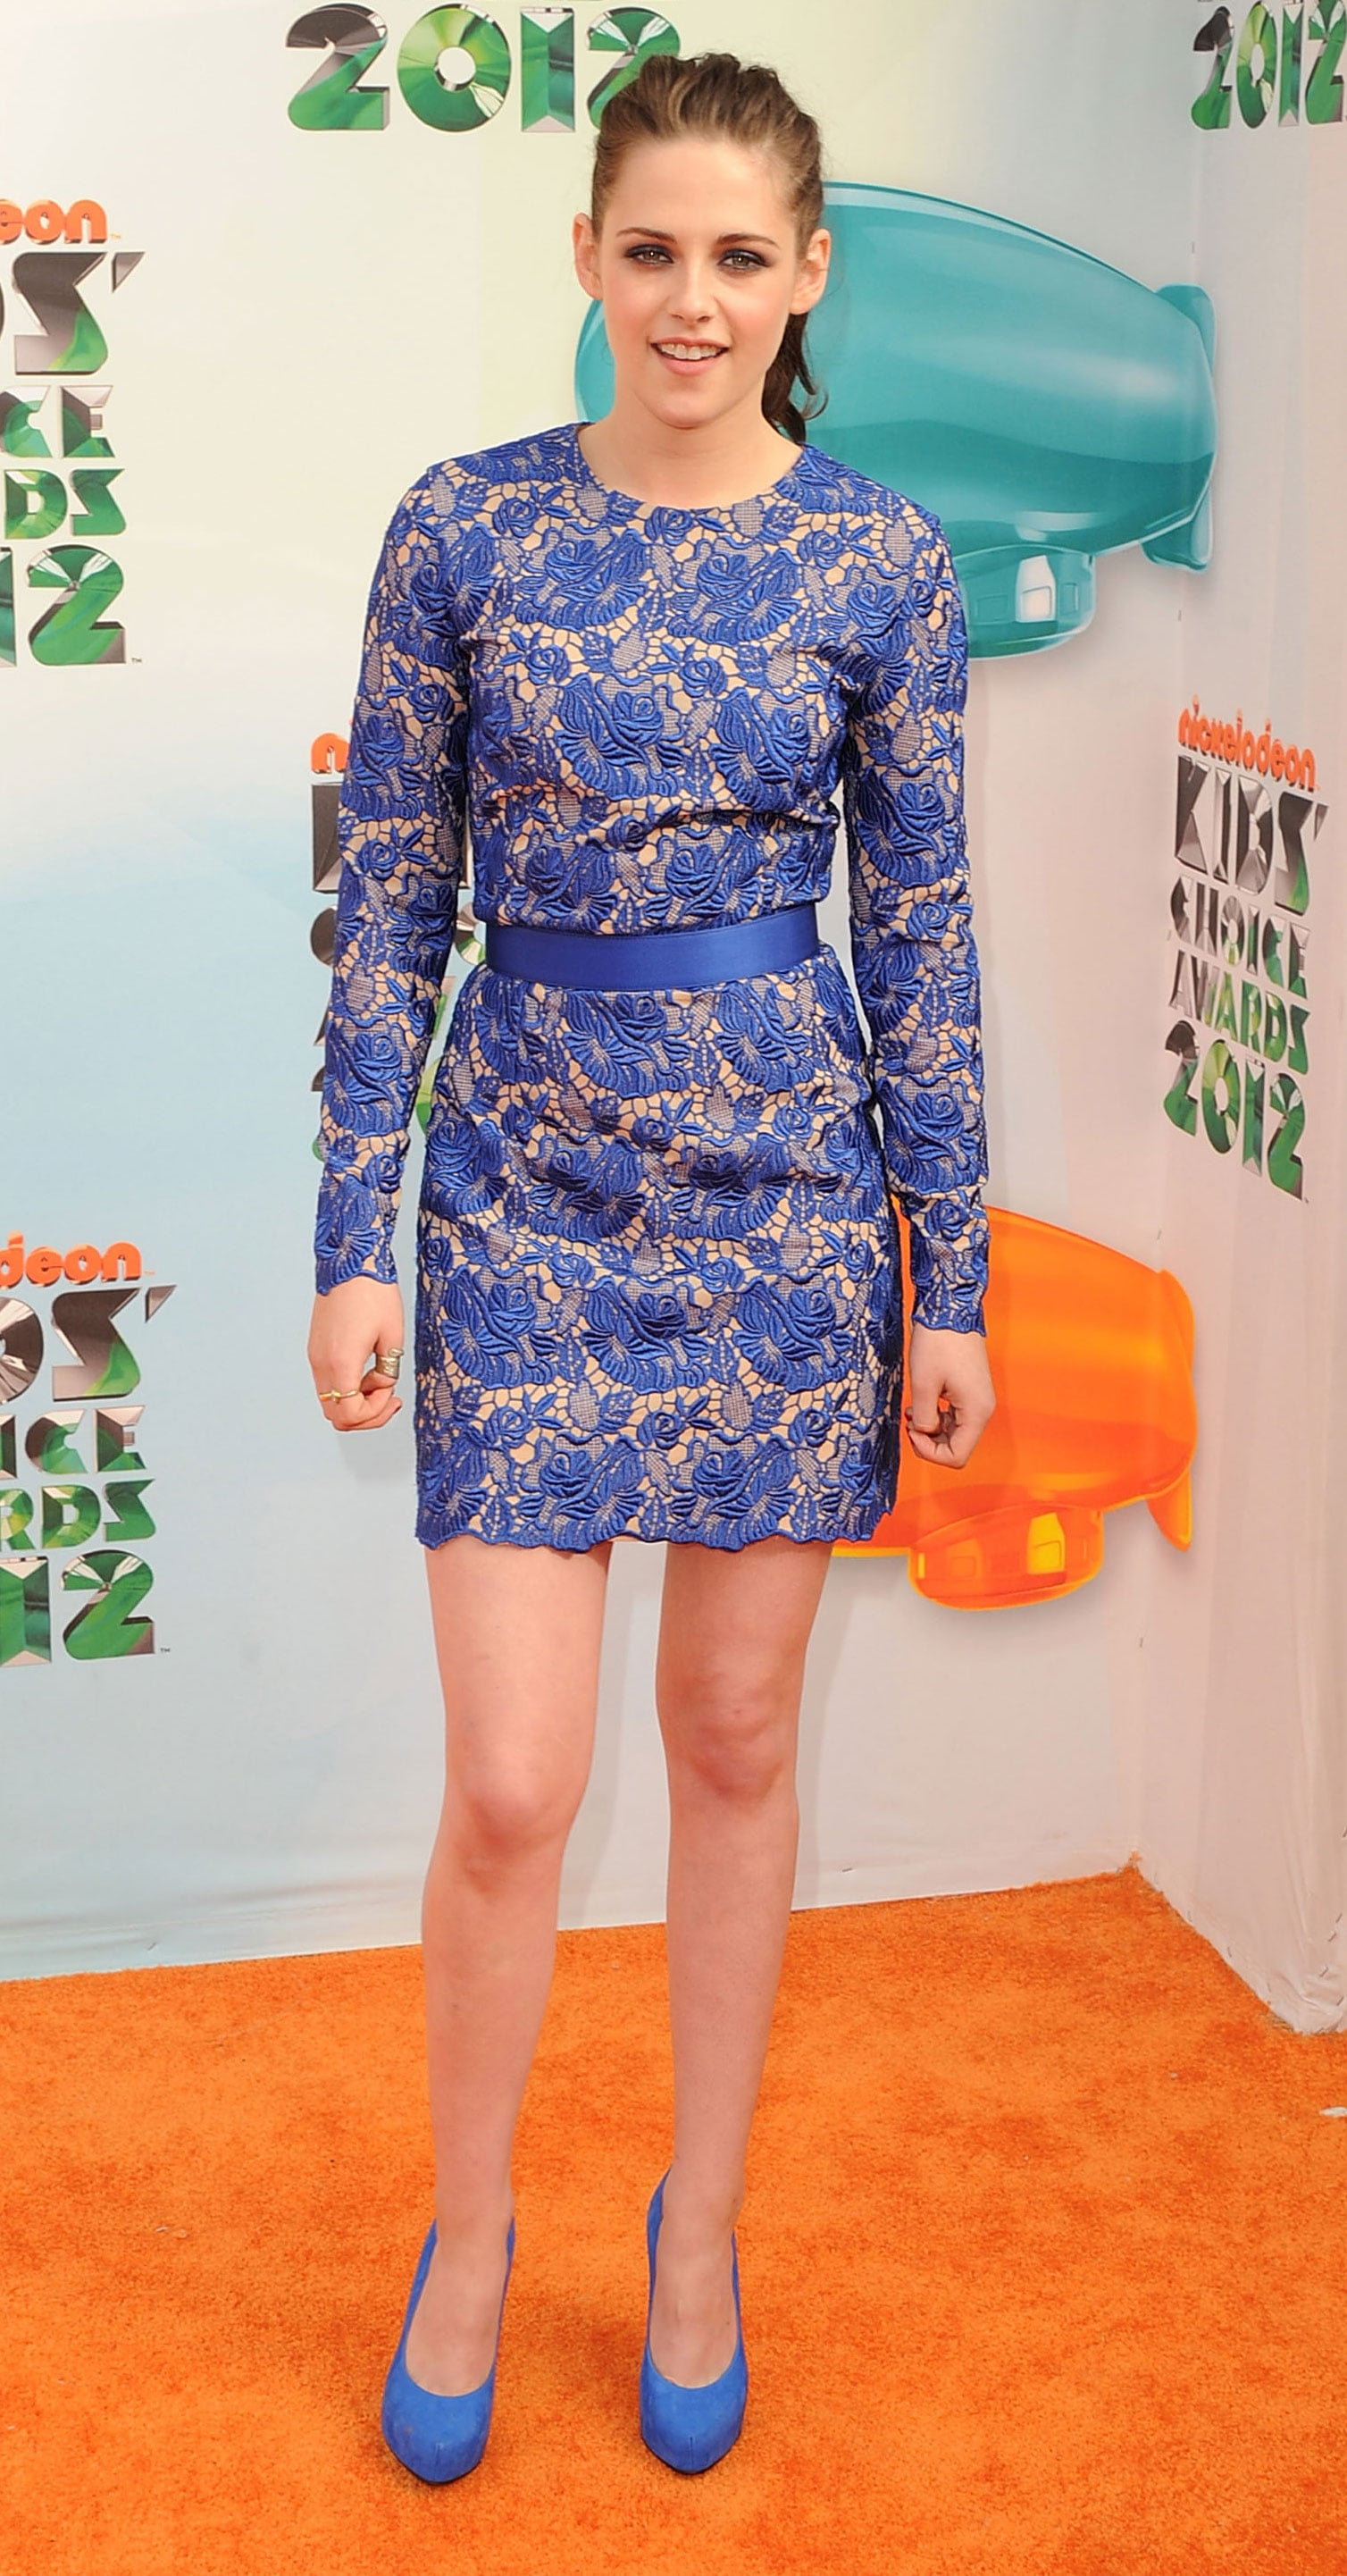 The brunette beauty wore a feminine blue lace Stella McCartney mini with matching suede pumps for the Kids' Choice Awards in March 2012.